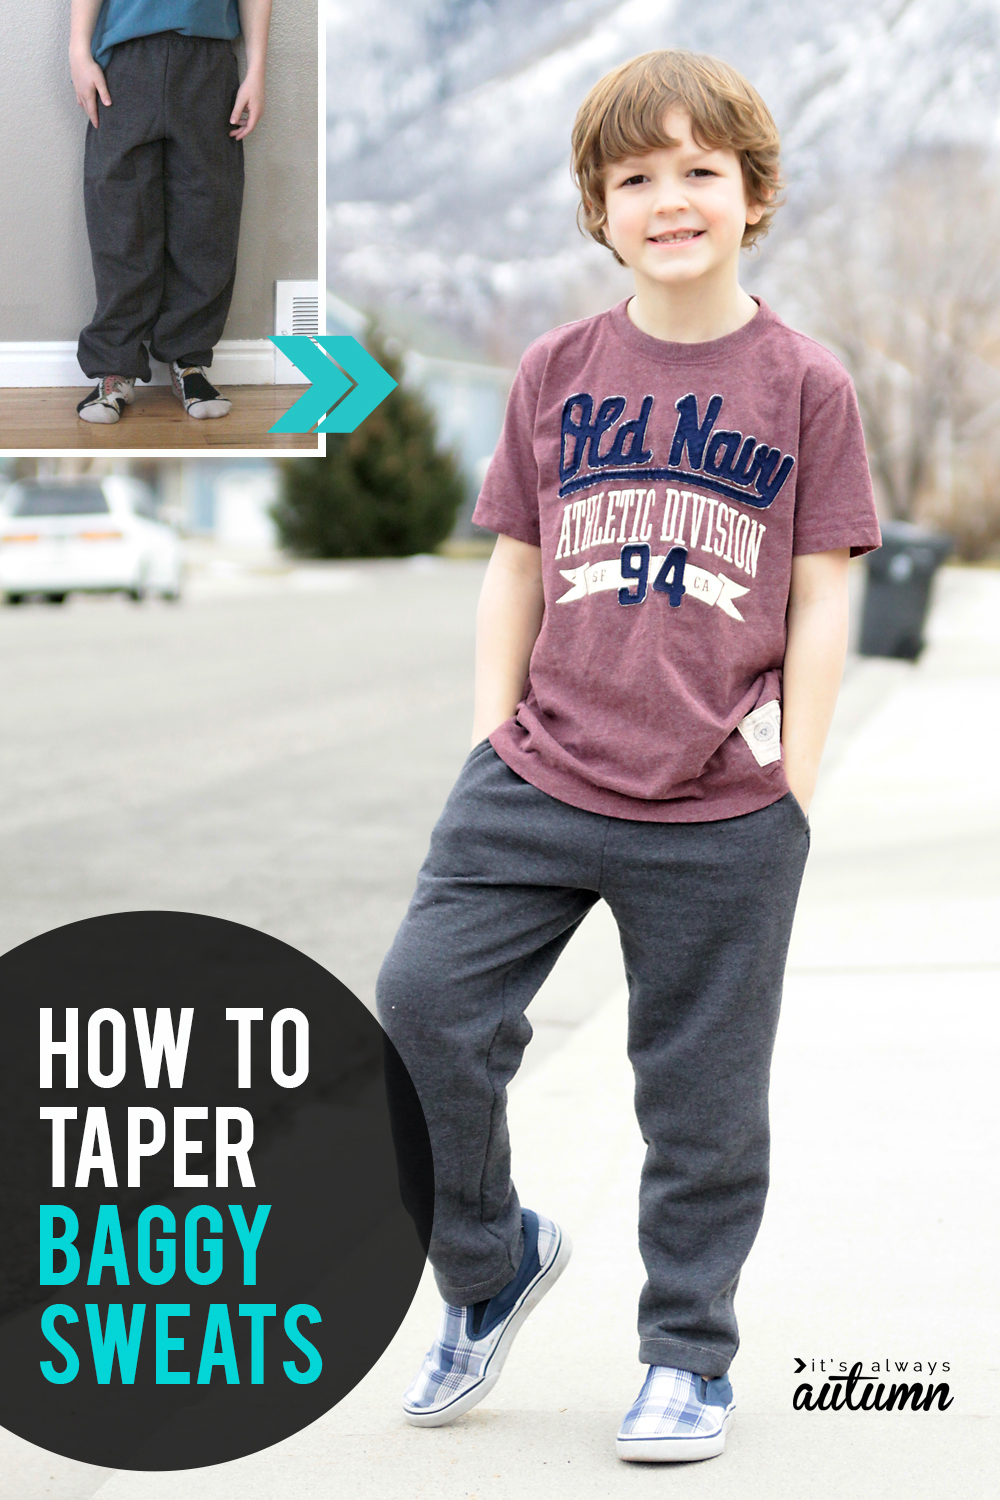 How to taper baggy sweatpants! Easy sewing tutorial for giving old baggy sweatpants a slimmer fit.